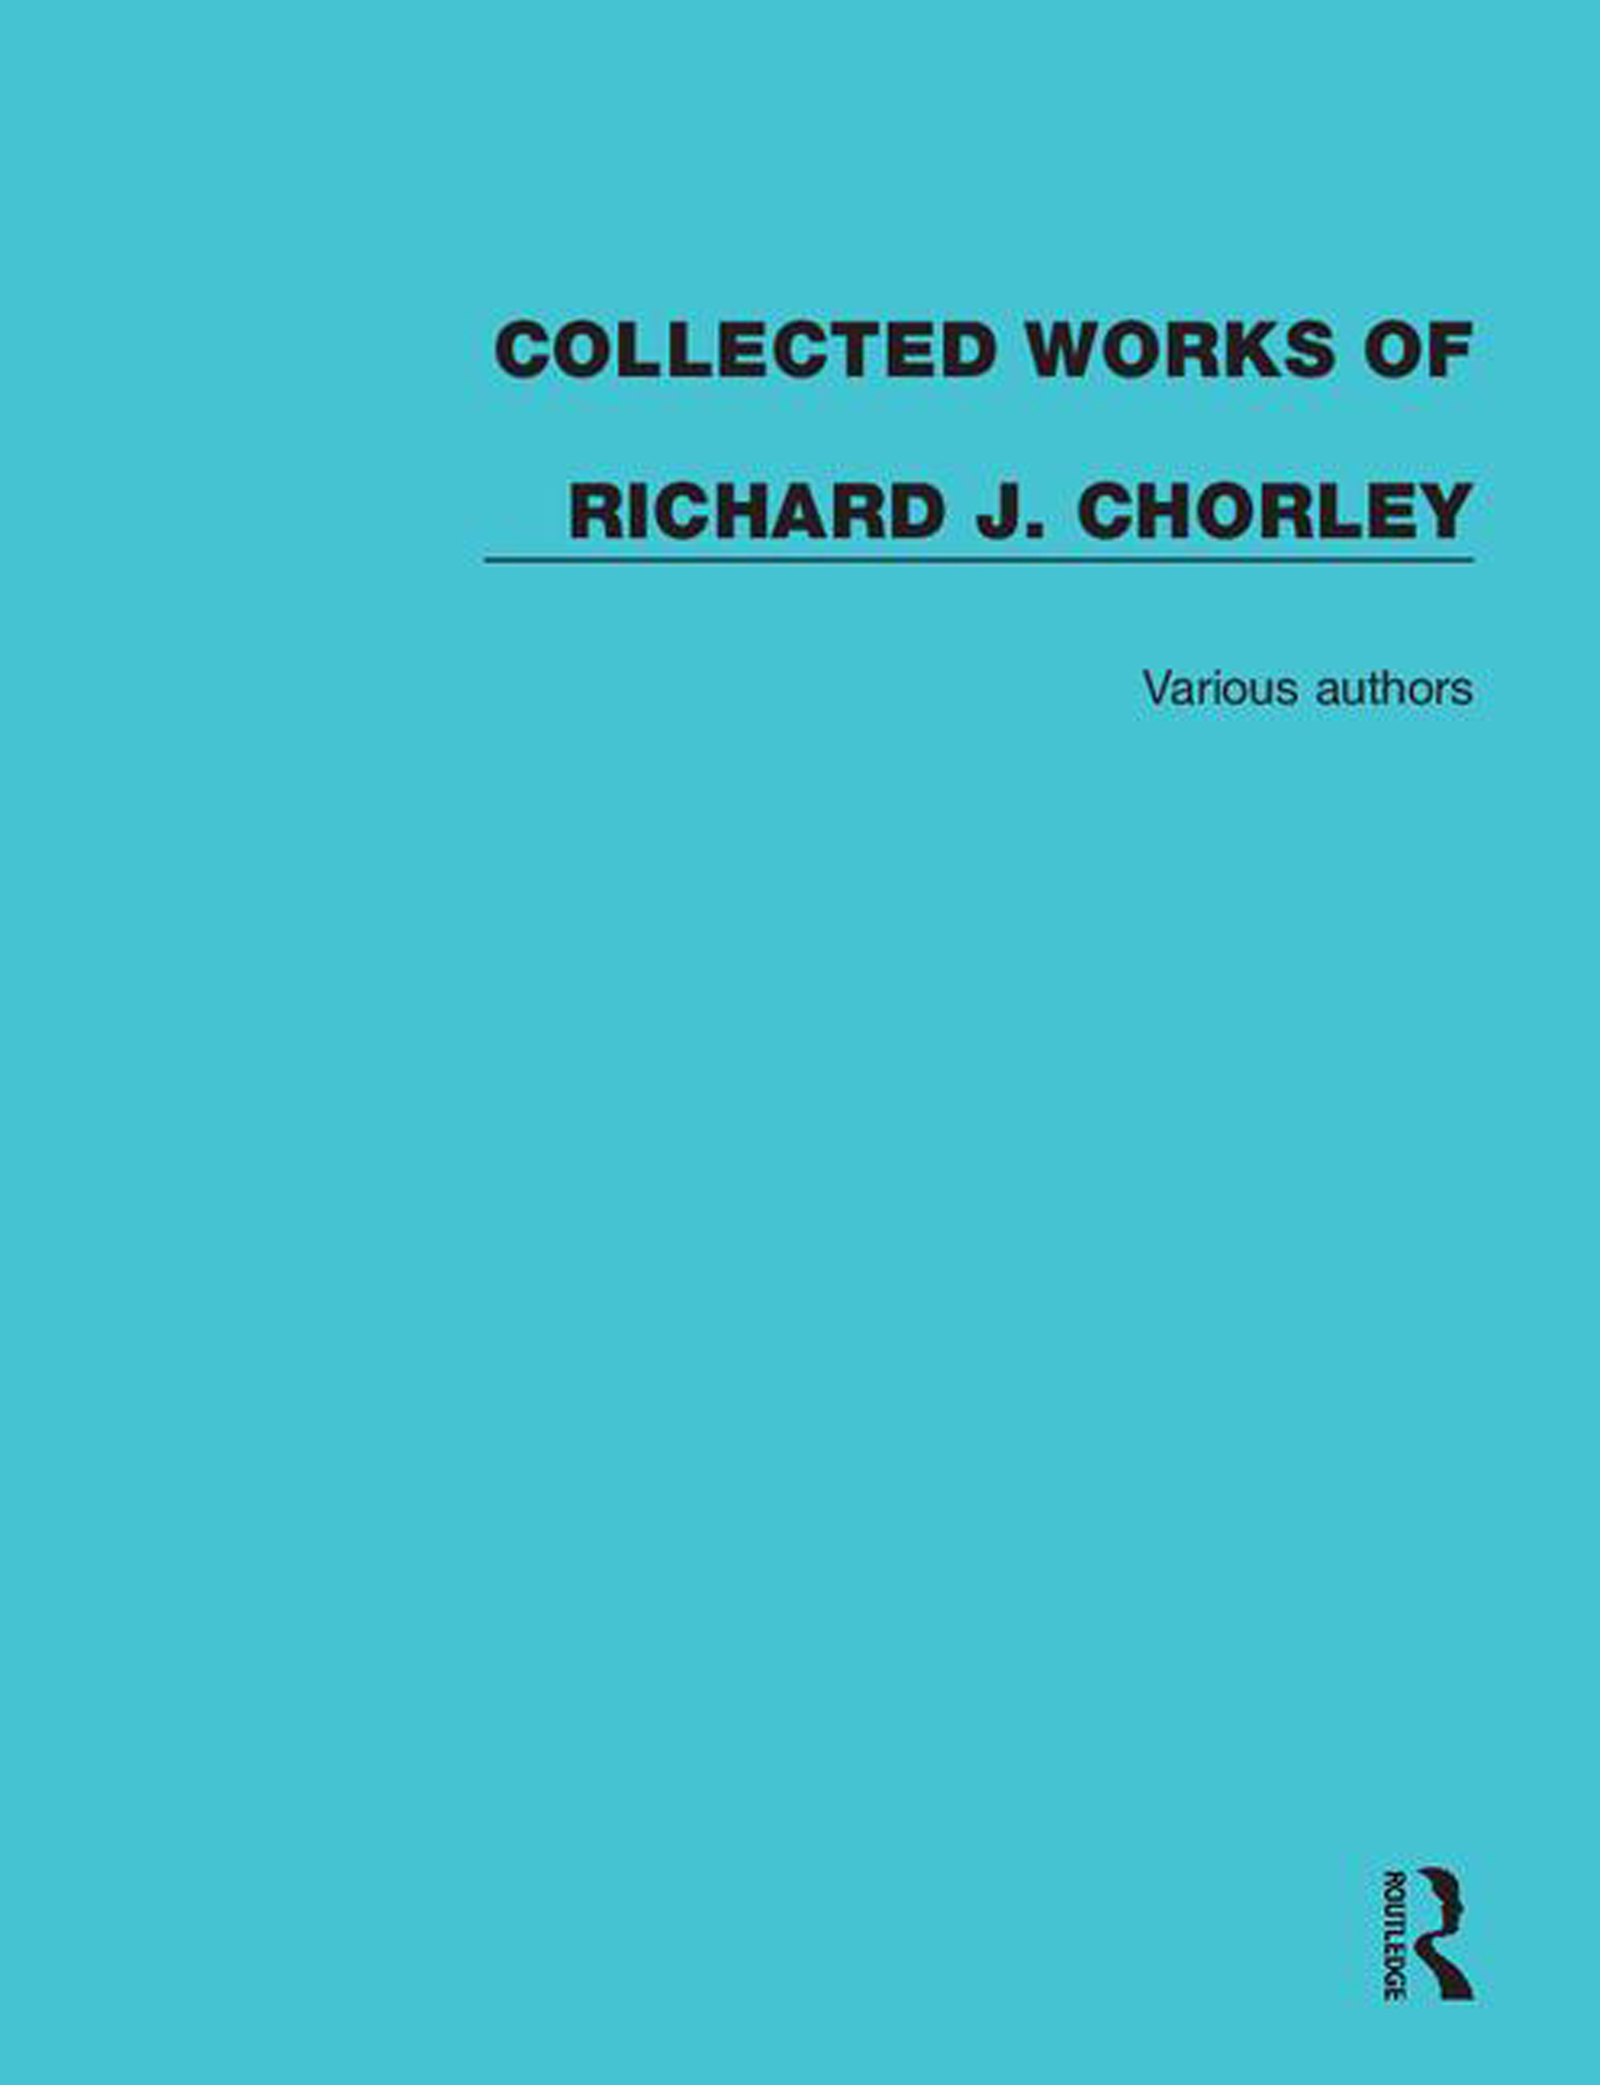 Collected Works of Richard J. Chorley book cover